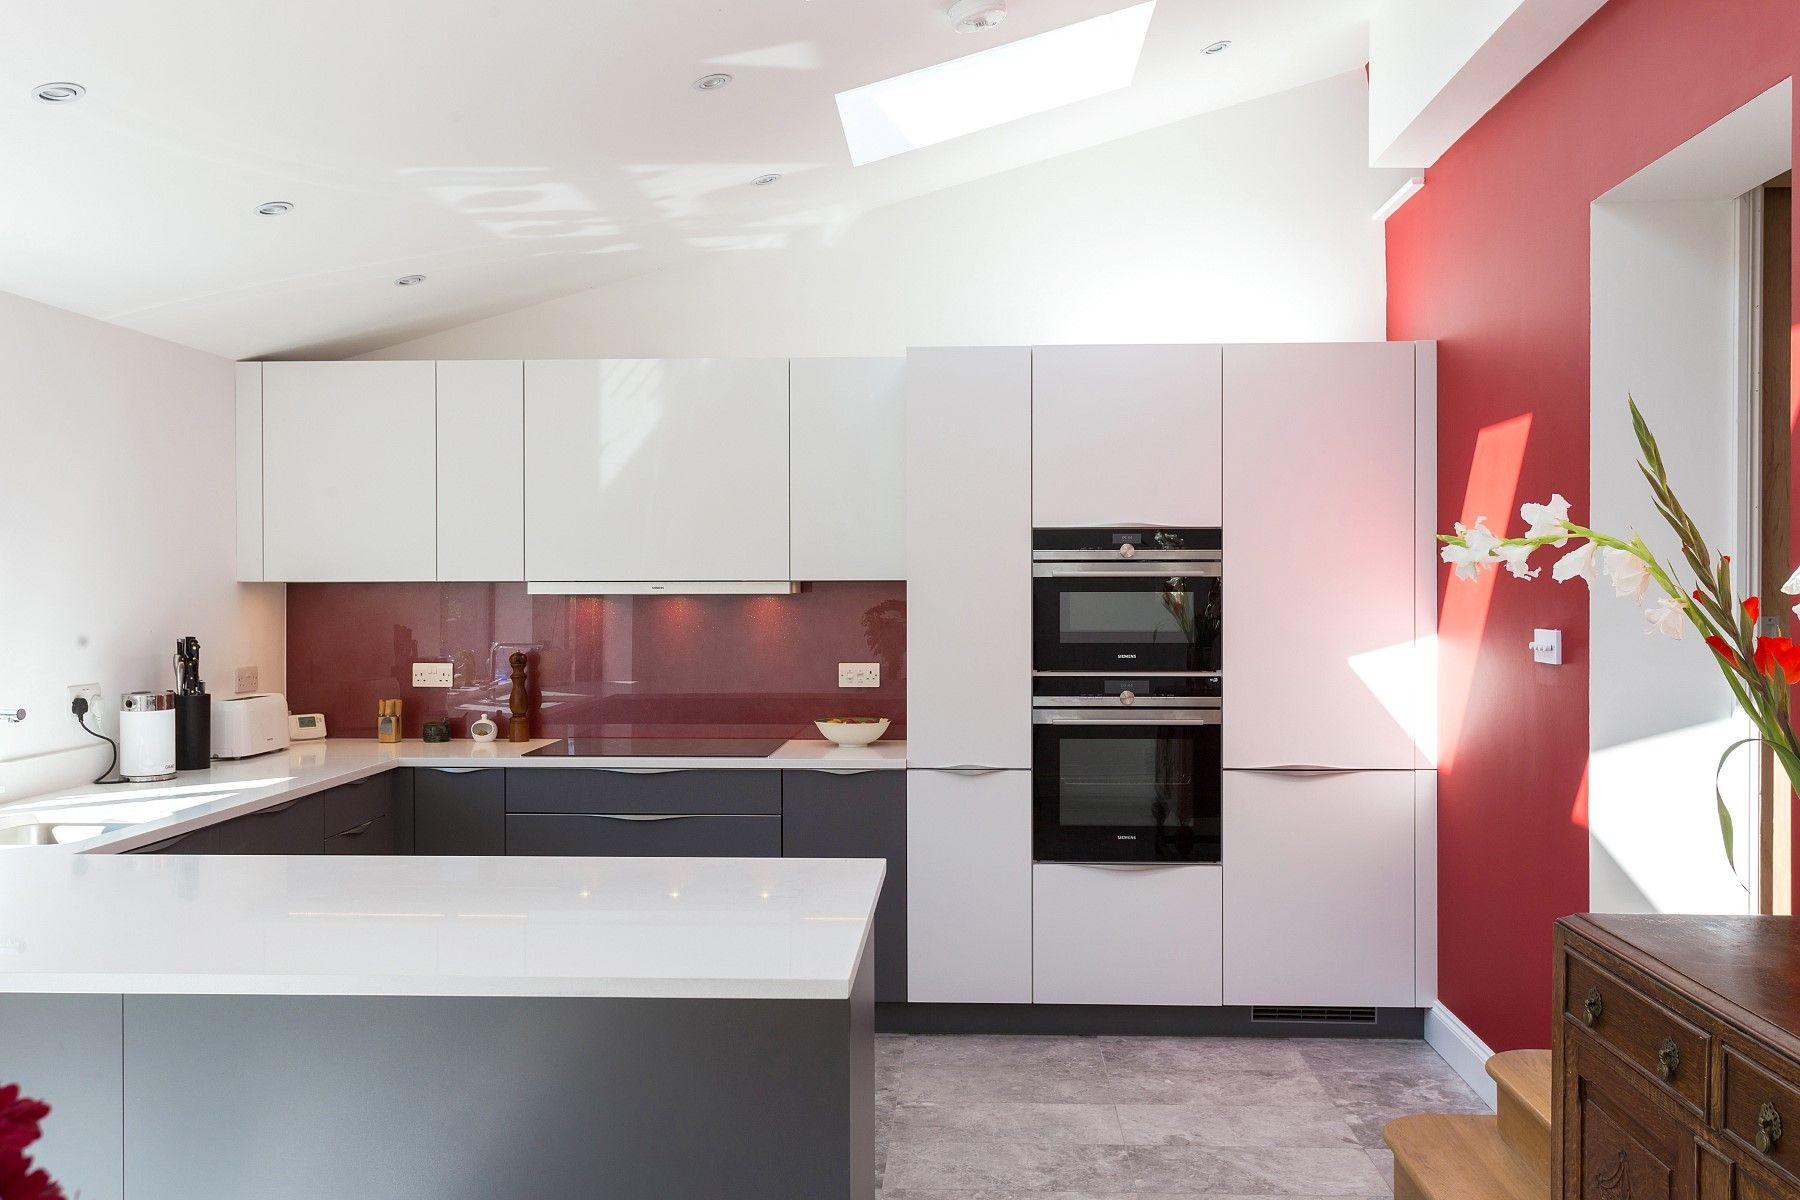 Matt Quartz Grey And White Nolte Kitchen With Top Mounted Handles And  Sparkly Red Glass Splash Backs Nolte Kche Grau Pinterest Quality Kitchens.